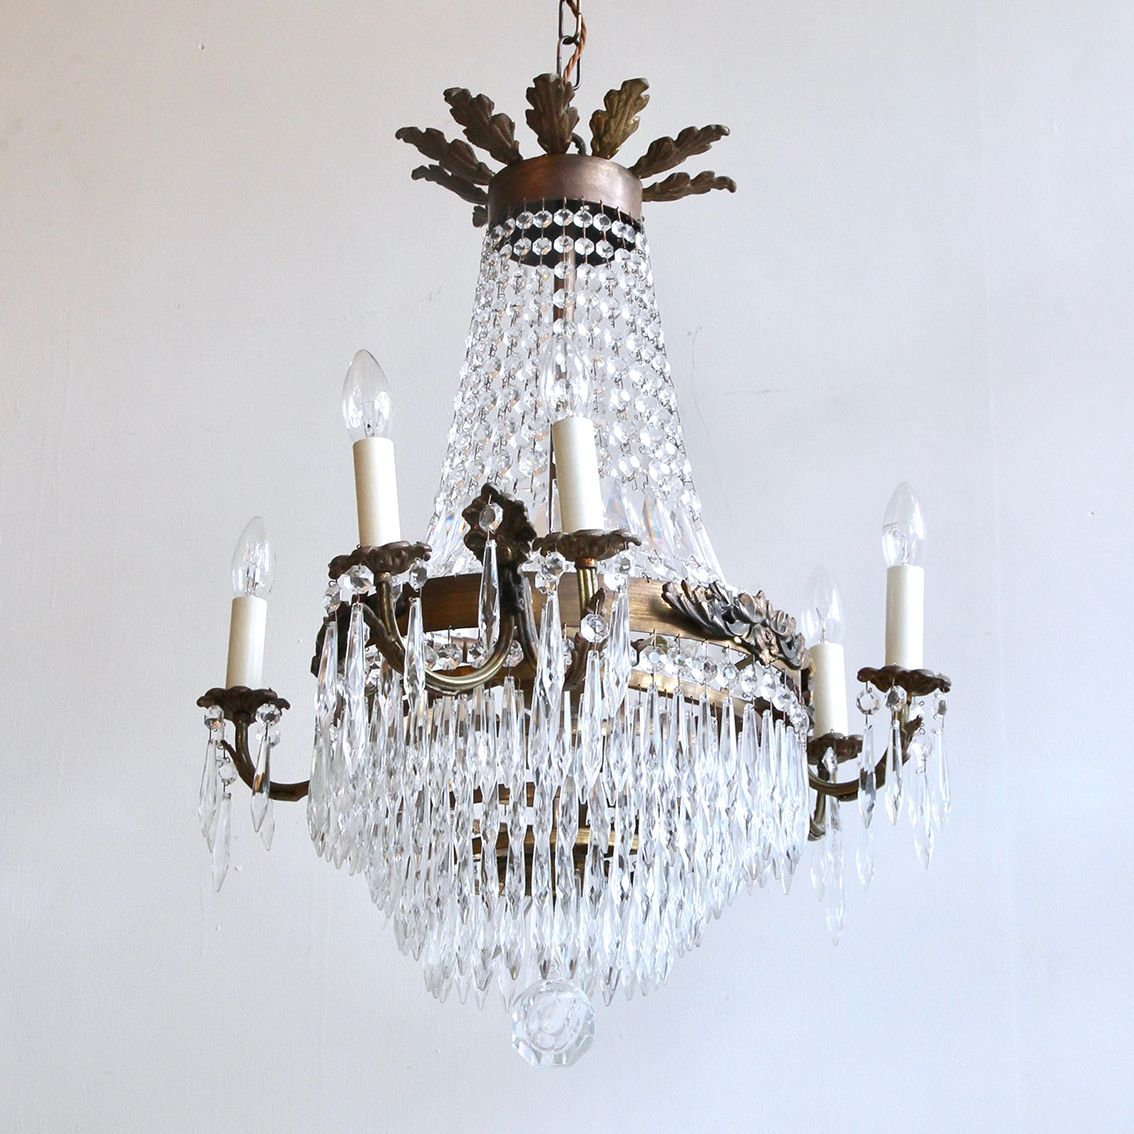 Vintage french tiered and branch chandelier for sale at pamono vintage french tiered and branch chandelier aloadofball Image collections